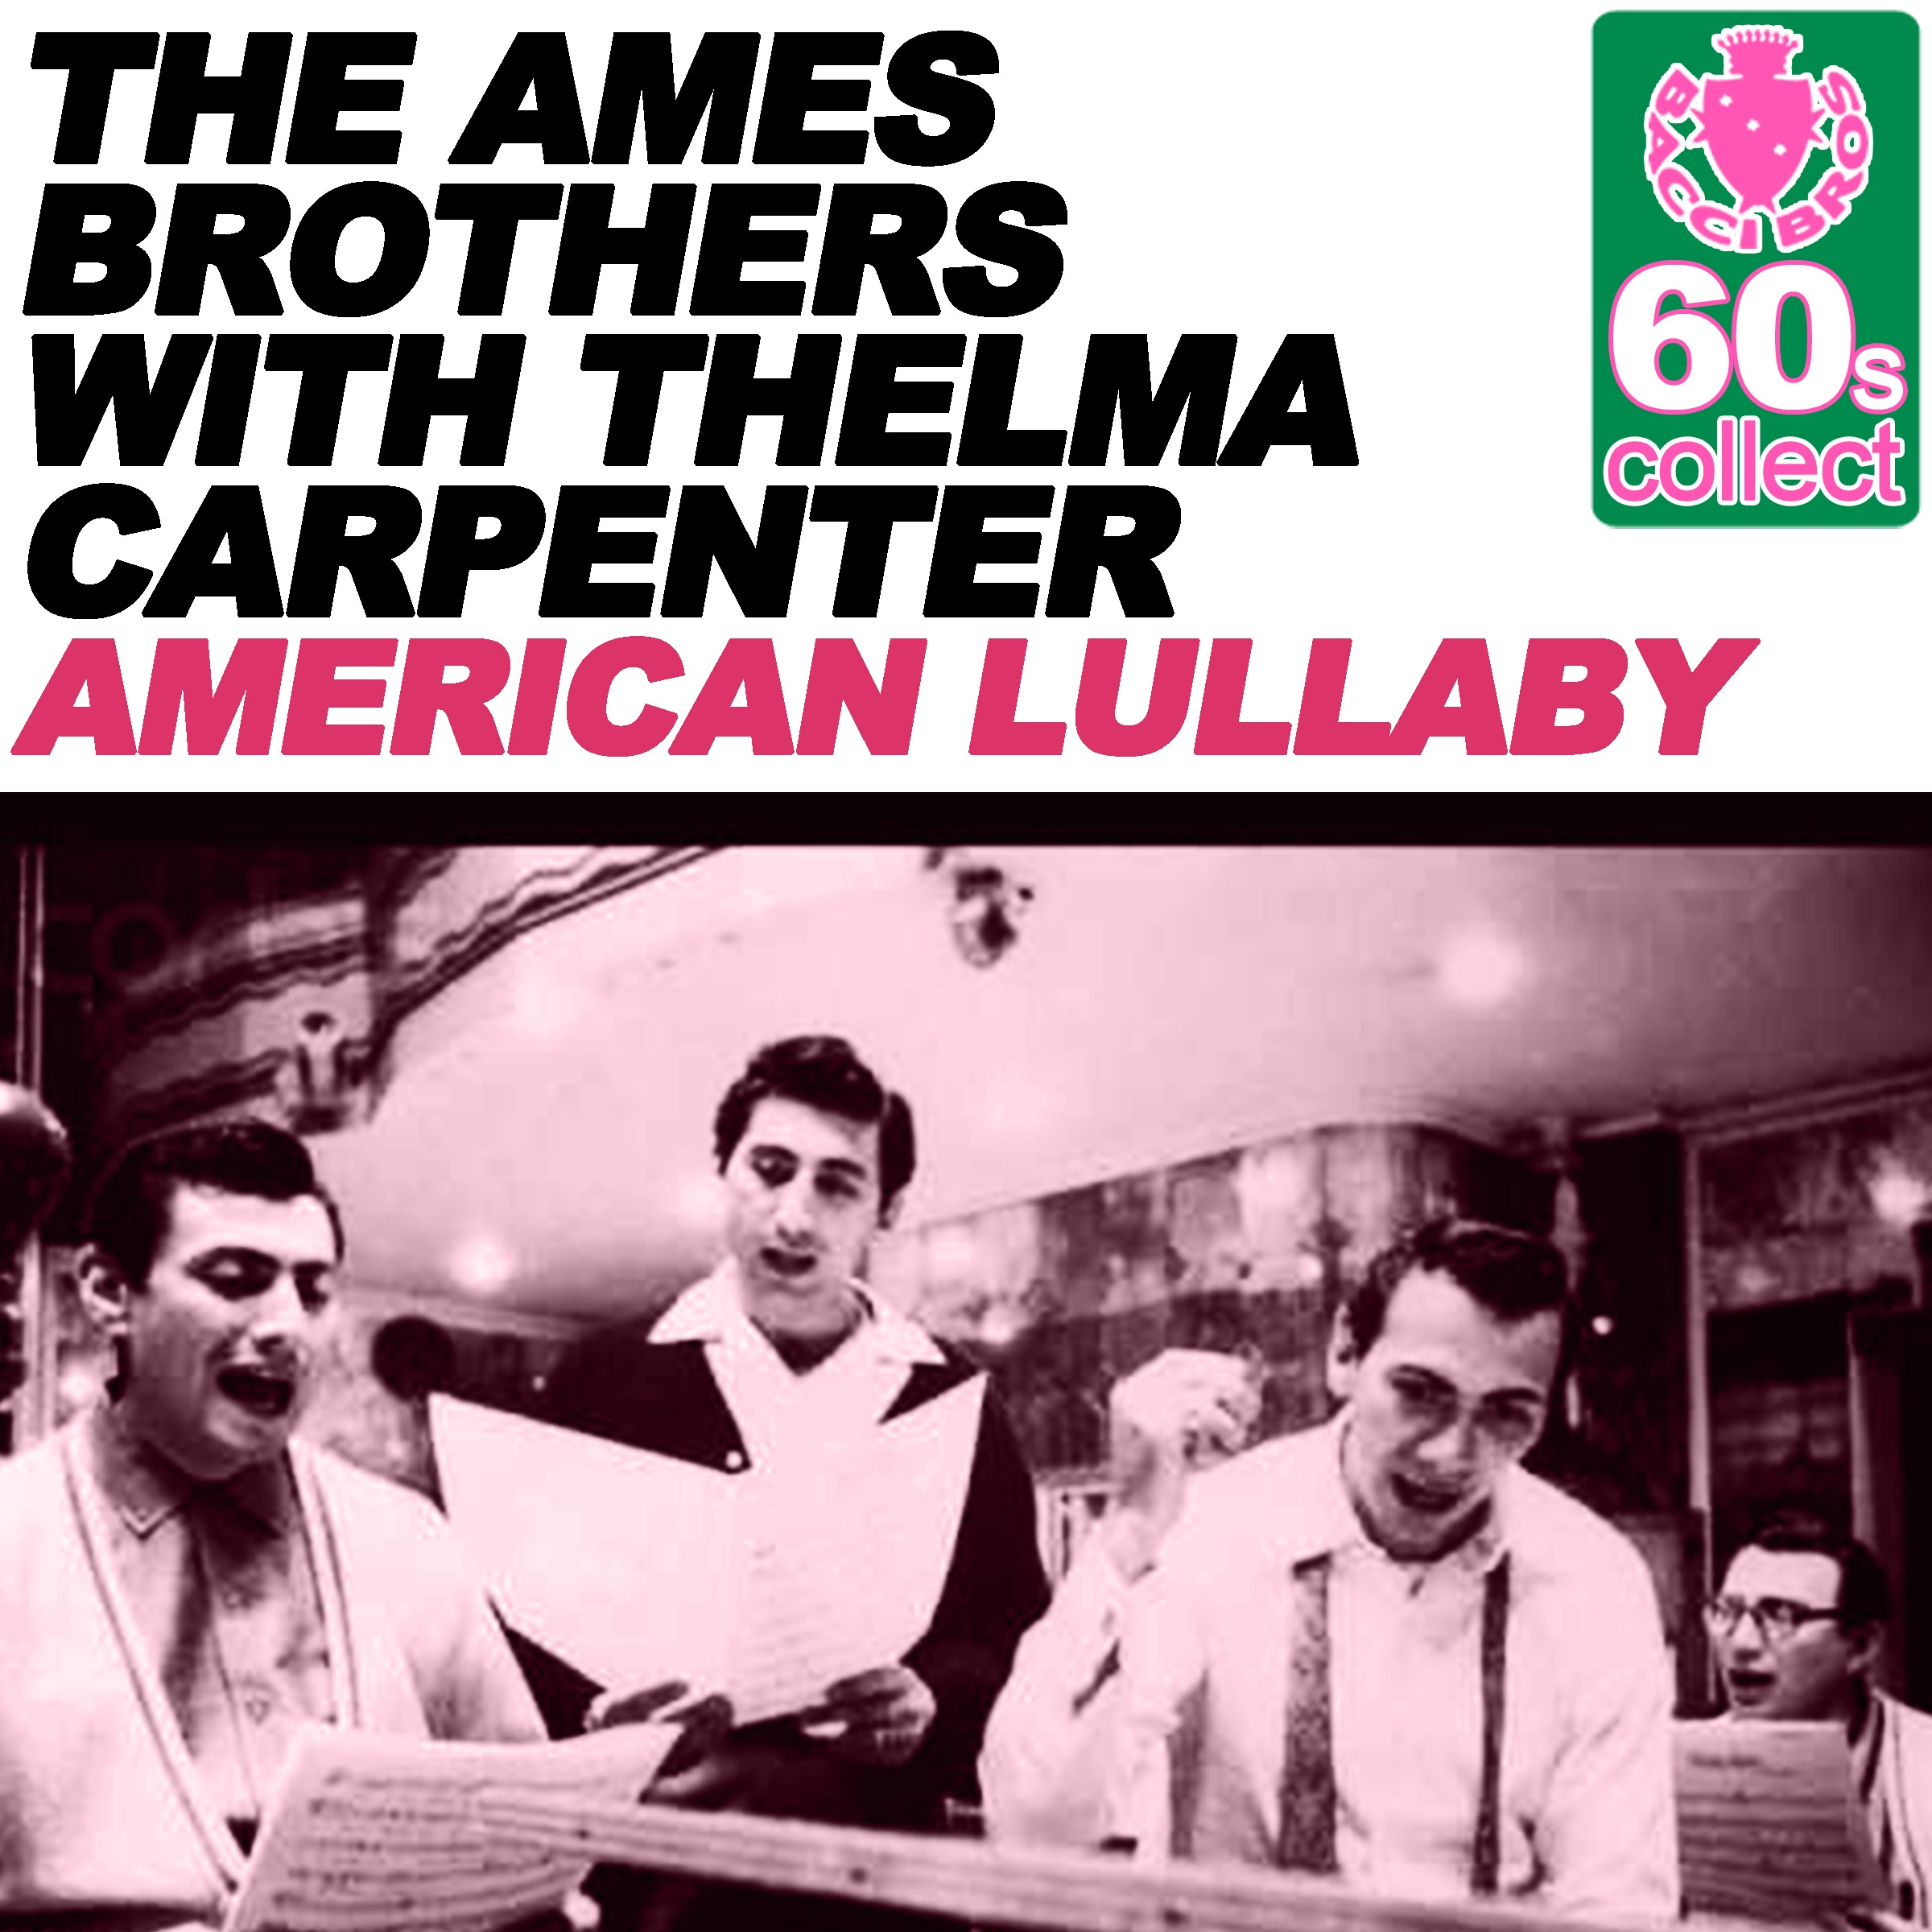 American Lullaby (Remastered) [with Thelma Carpenter] - Single